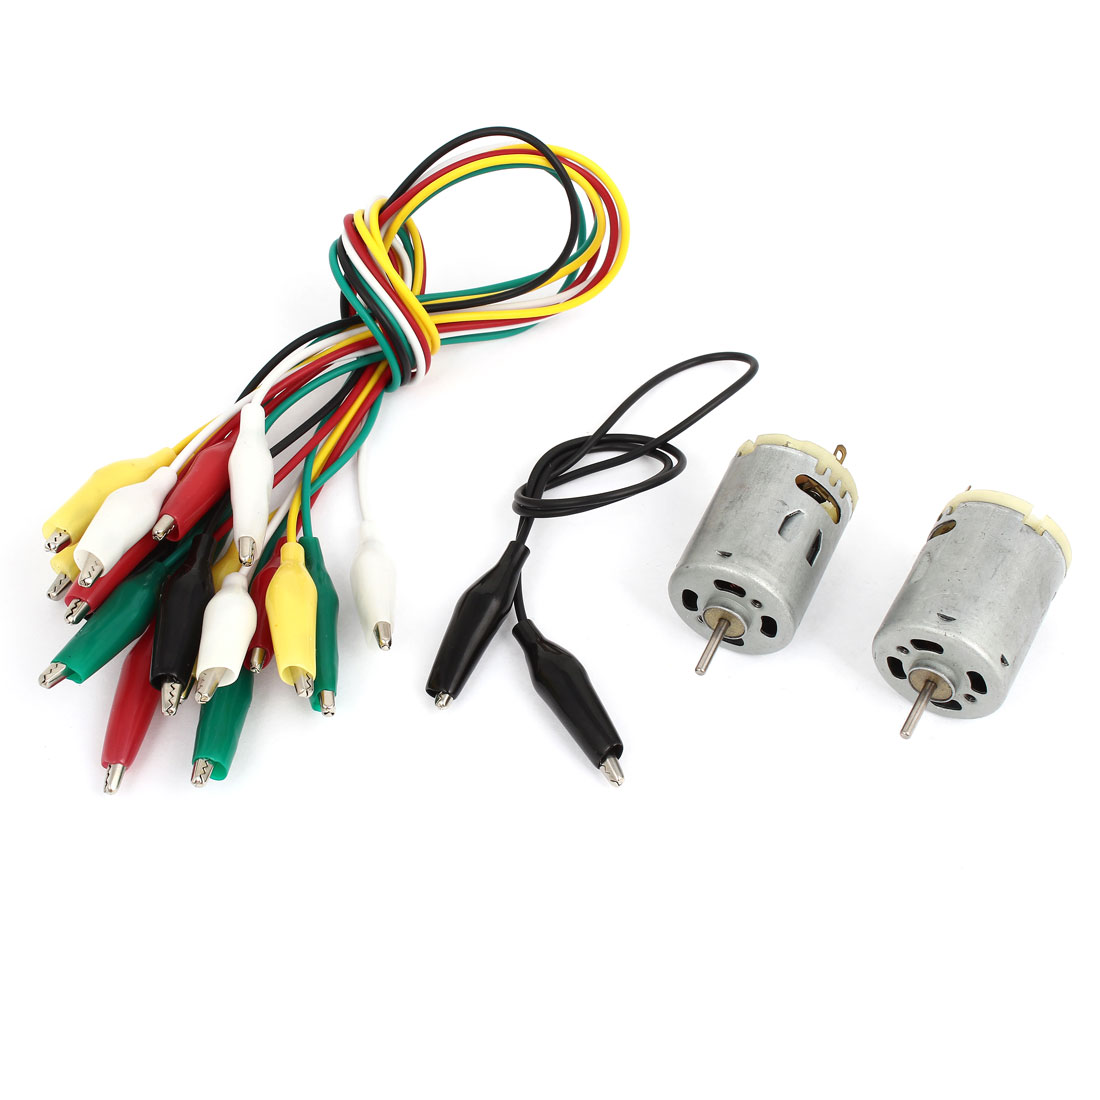 2Pcs High Torque DC 6-12V 9000-15000RPM 2 Terminals Type 380 Mini Magnetic Motor w Alligator Clip Cable